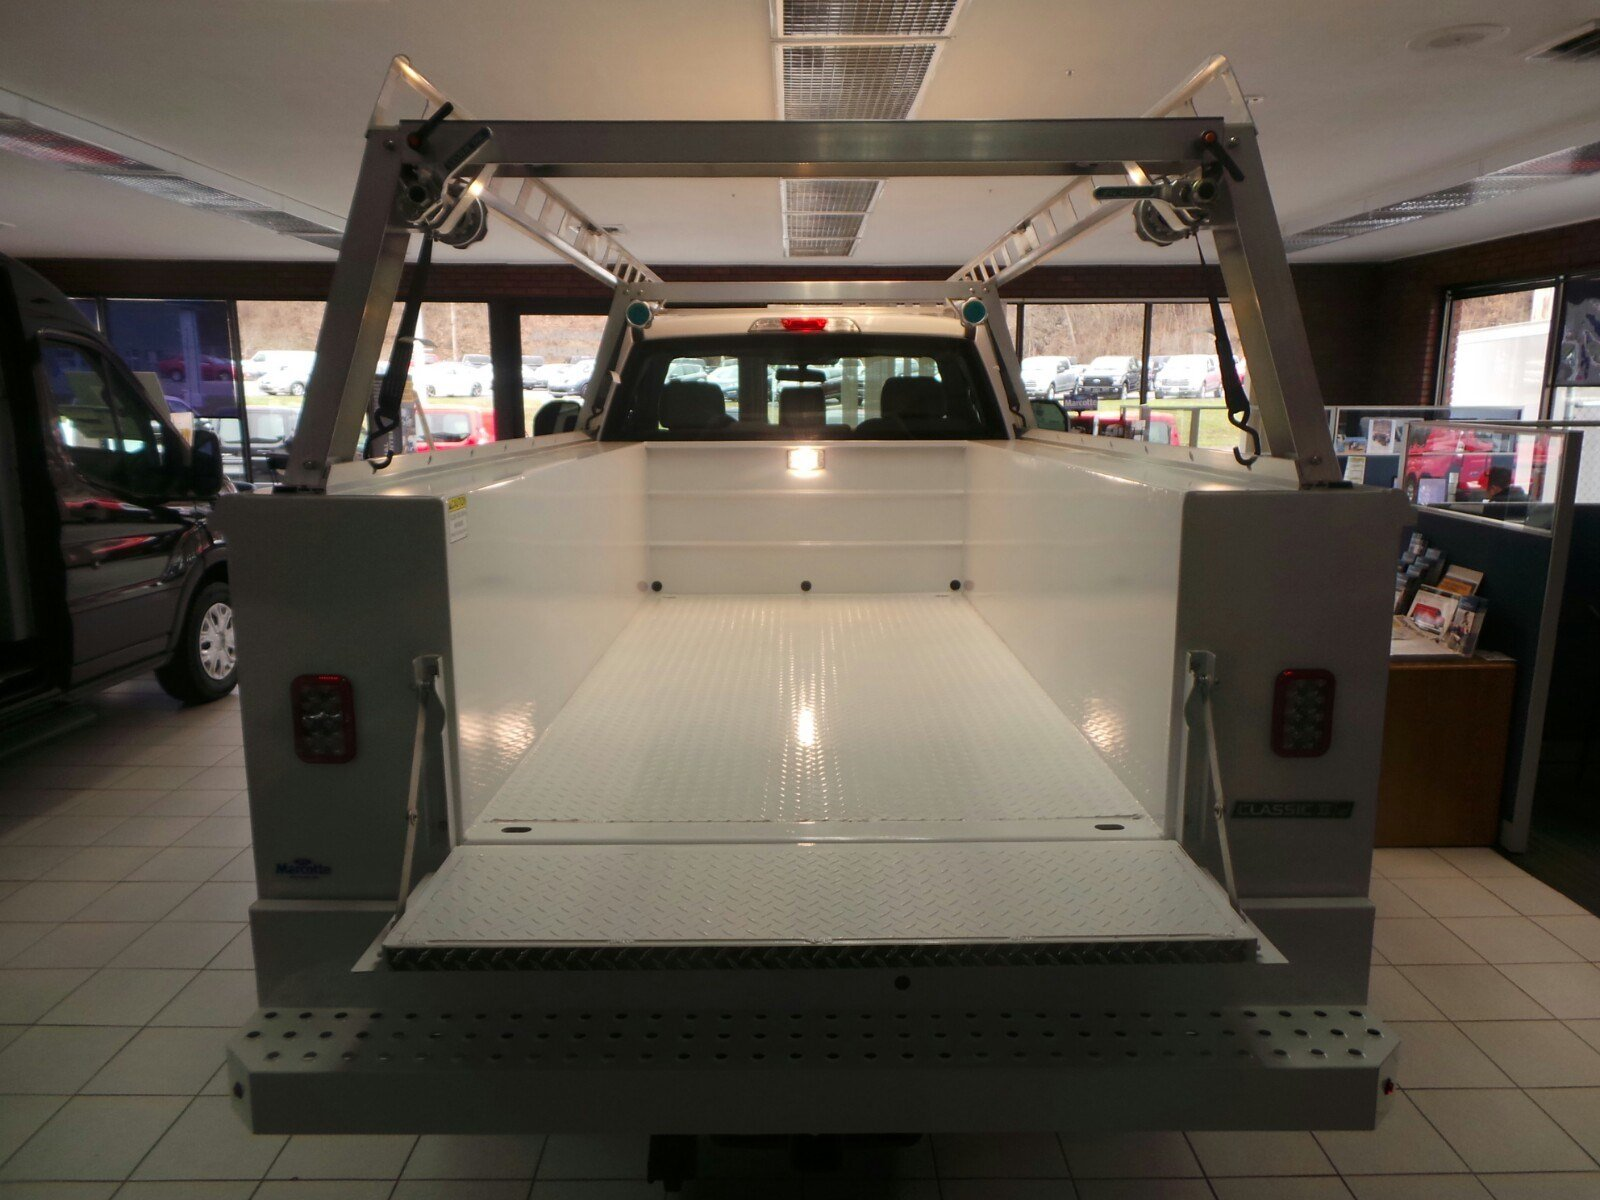 2019 F-350 Regular Cab 4x4,  Reading Classic II Aluminum  Service Body #S7183 - photo 16